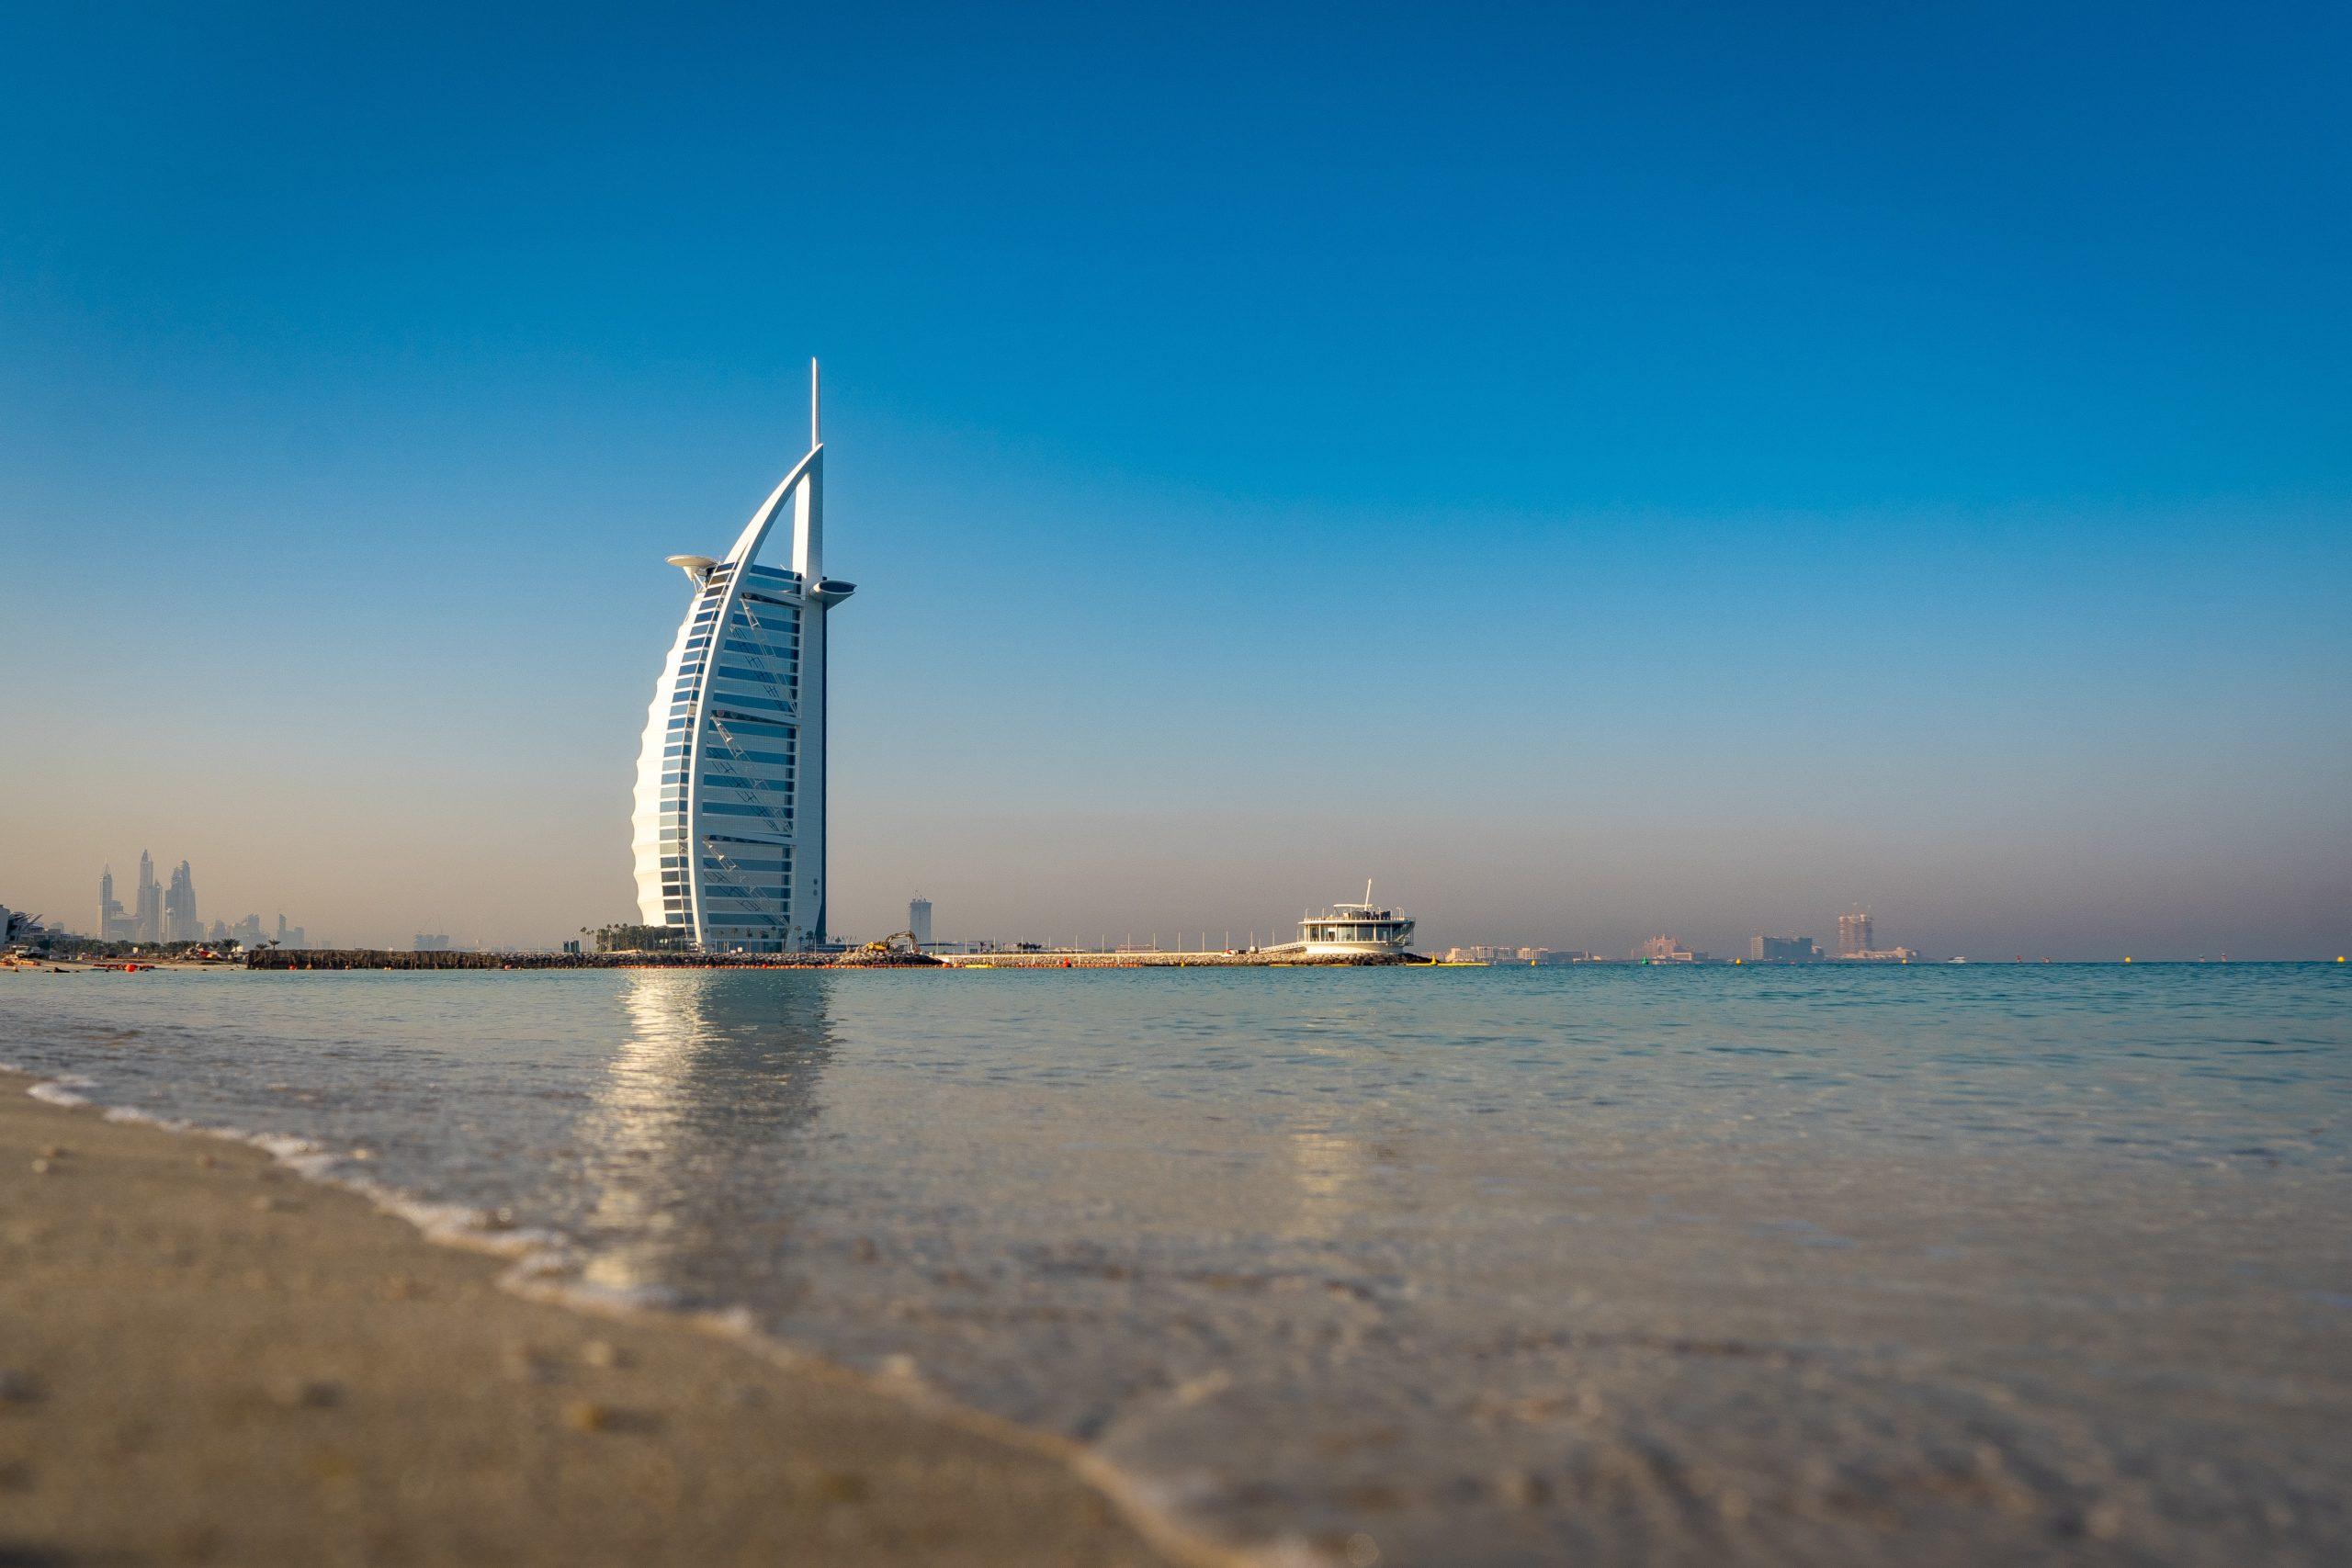 Is It Safe To Travel To Dubai, UAE Now